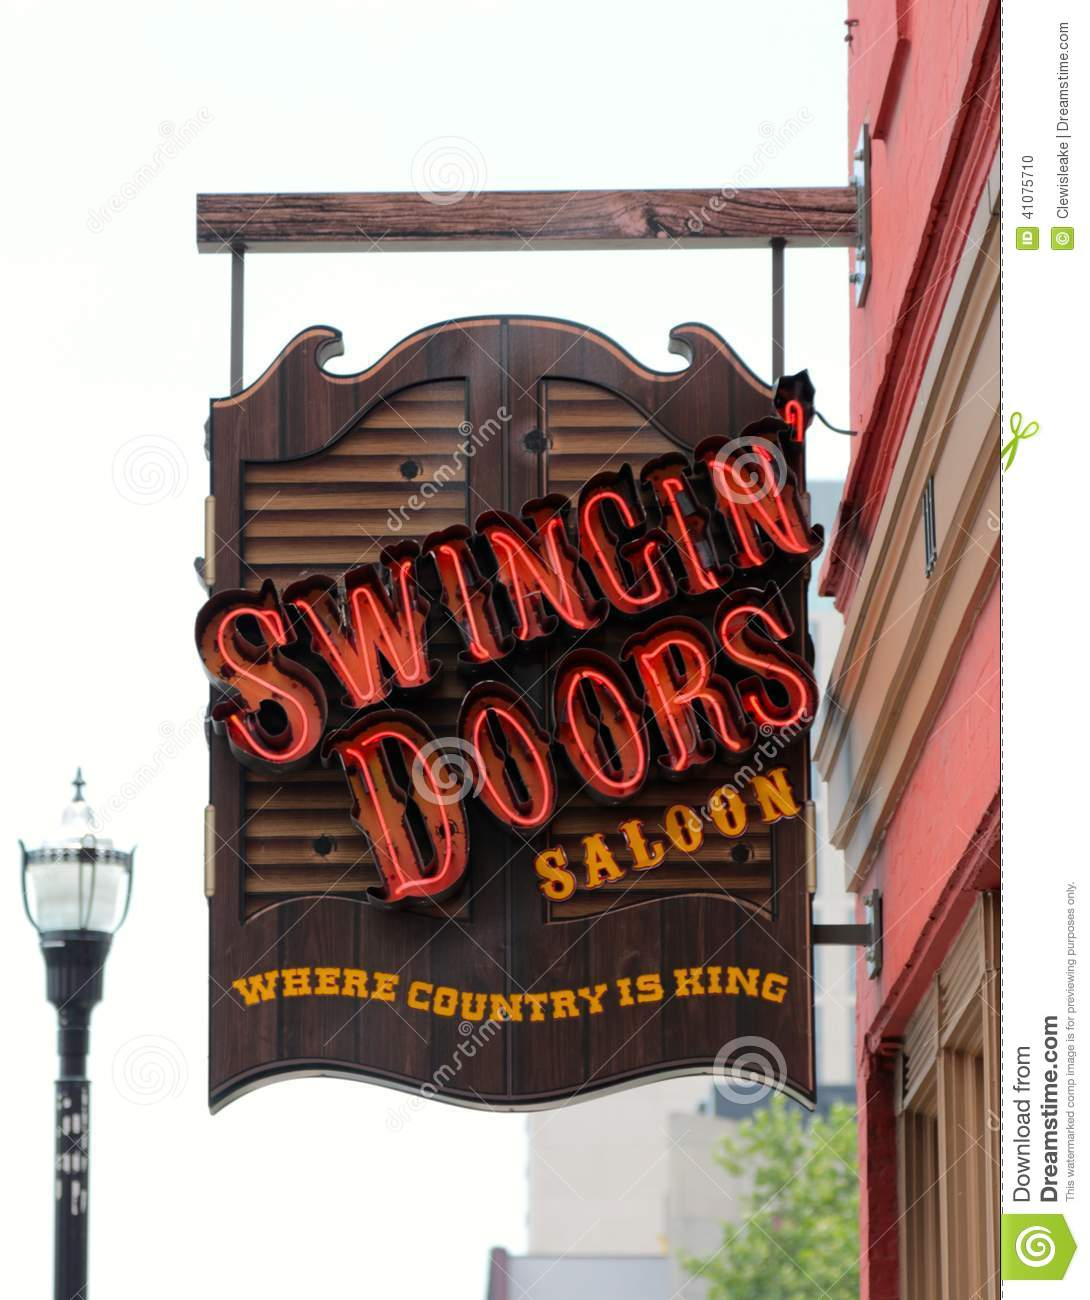 Swinging Doors Saloon Bar and Resturant Downtown Nashville Tennessee  sc 1 st  Dreamstime.com & Swinging Doors Saloon Bar And Resturant Downtown Nashville ...